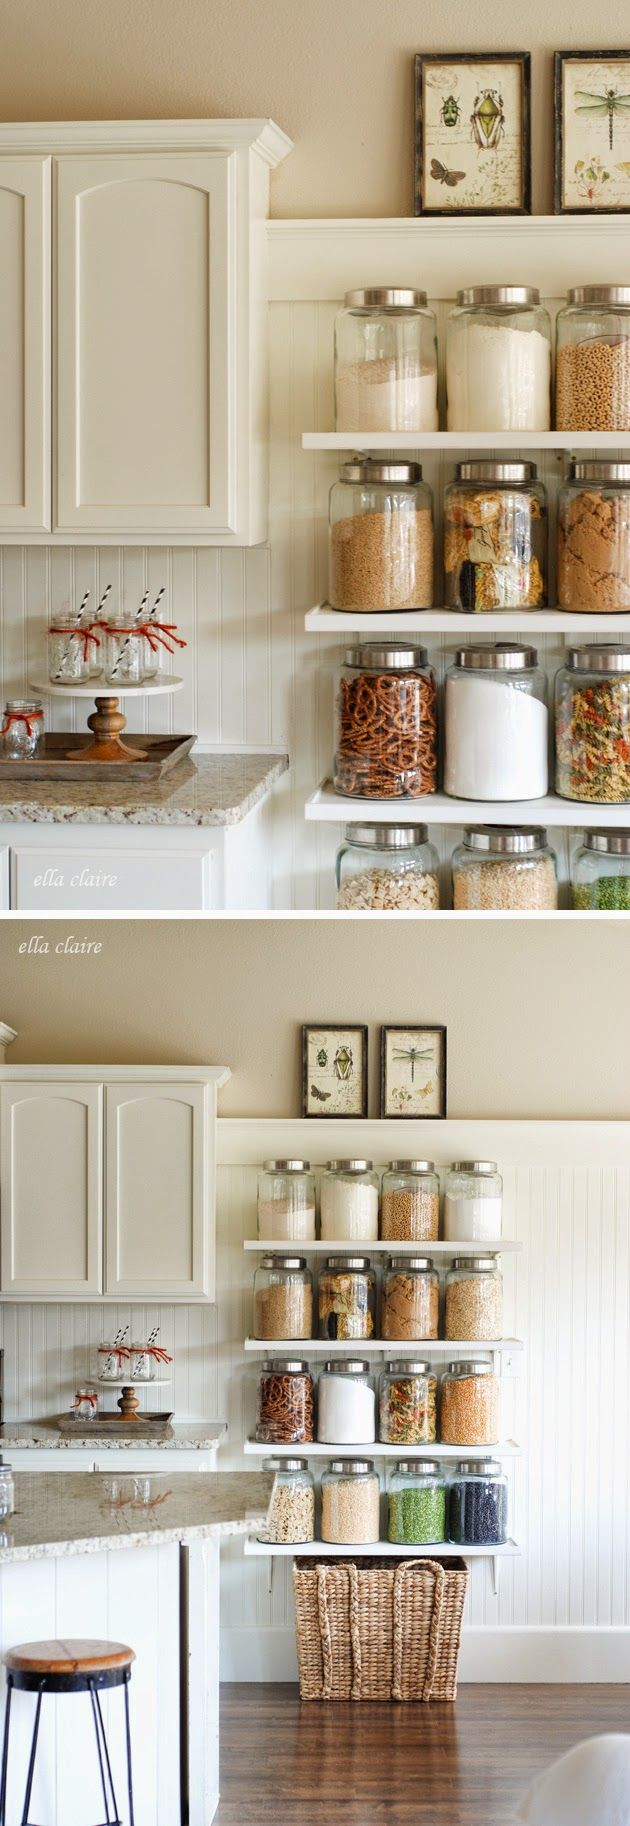 DIY Country Store Kitchen Shelves